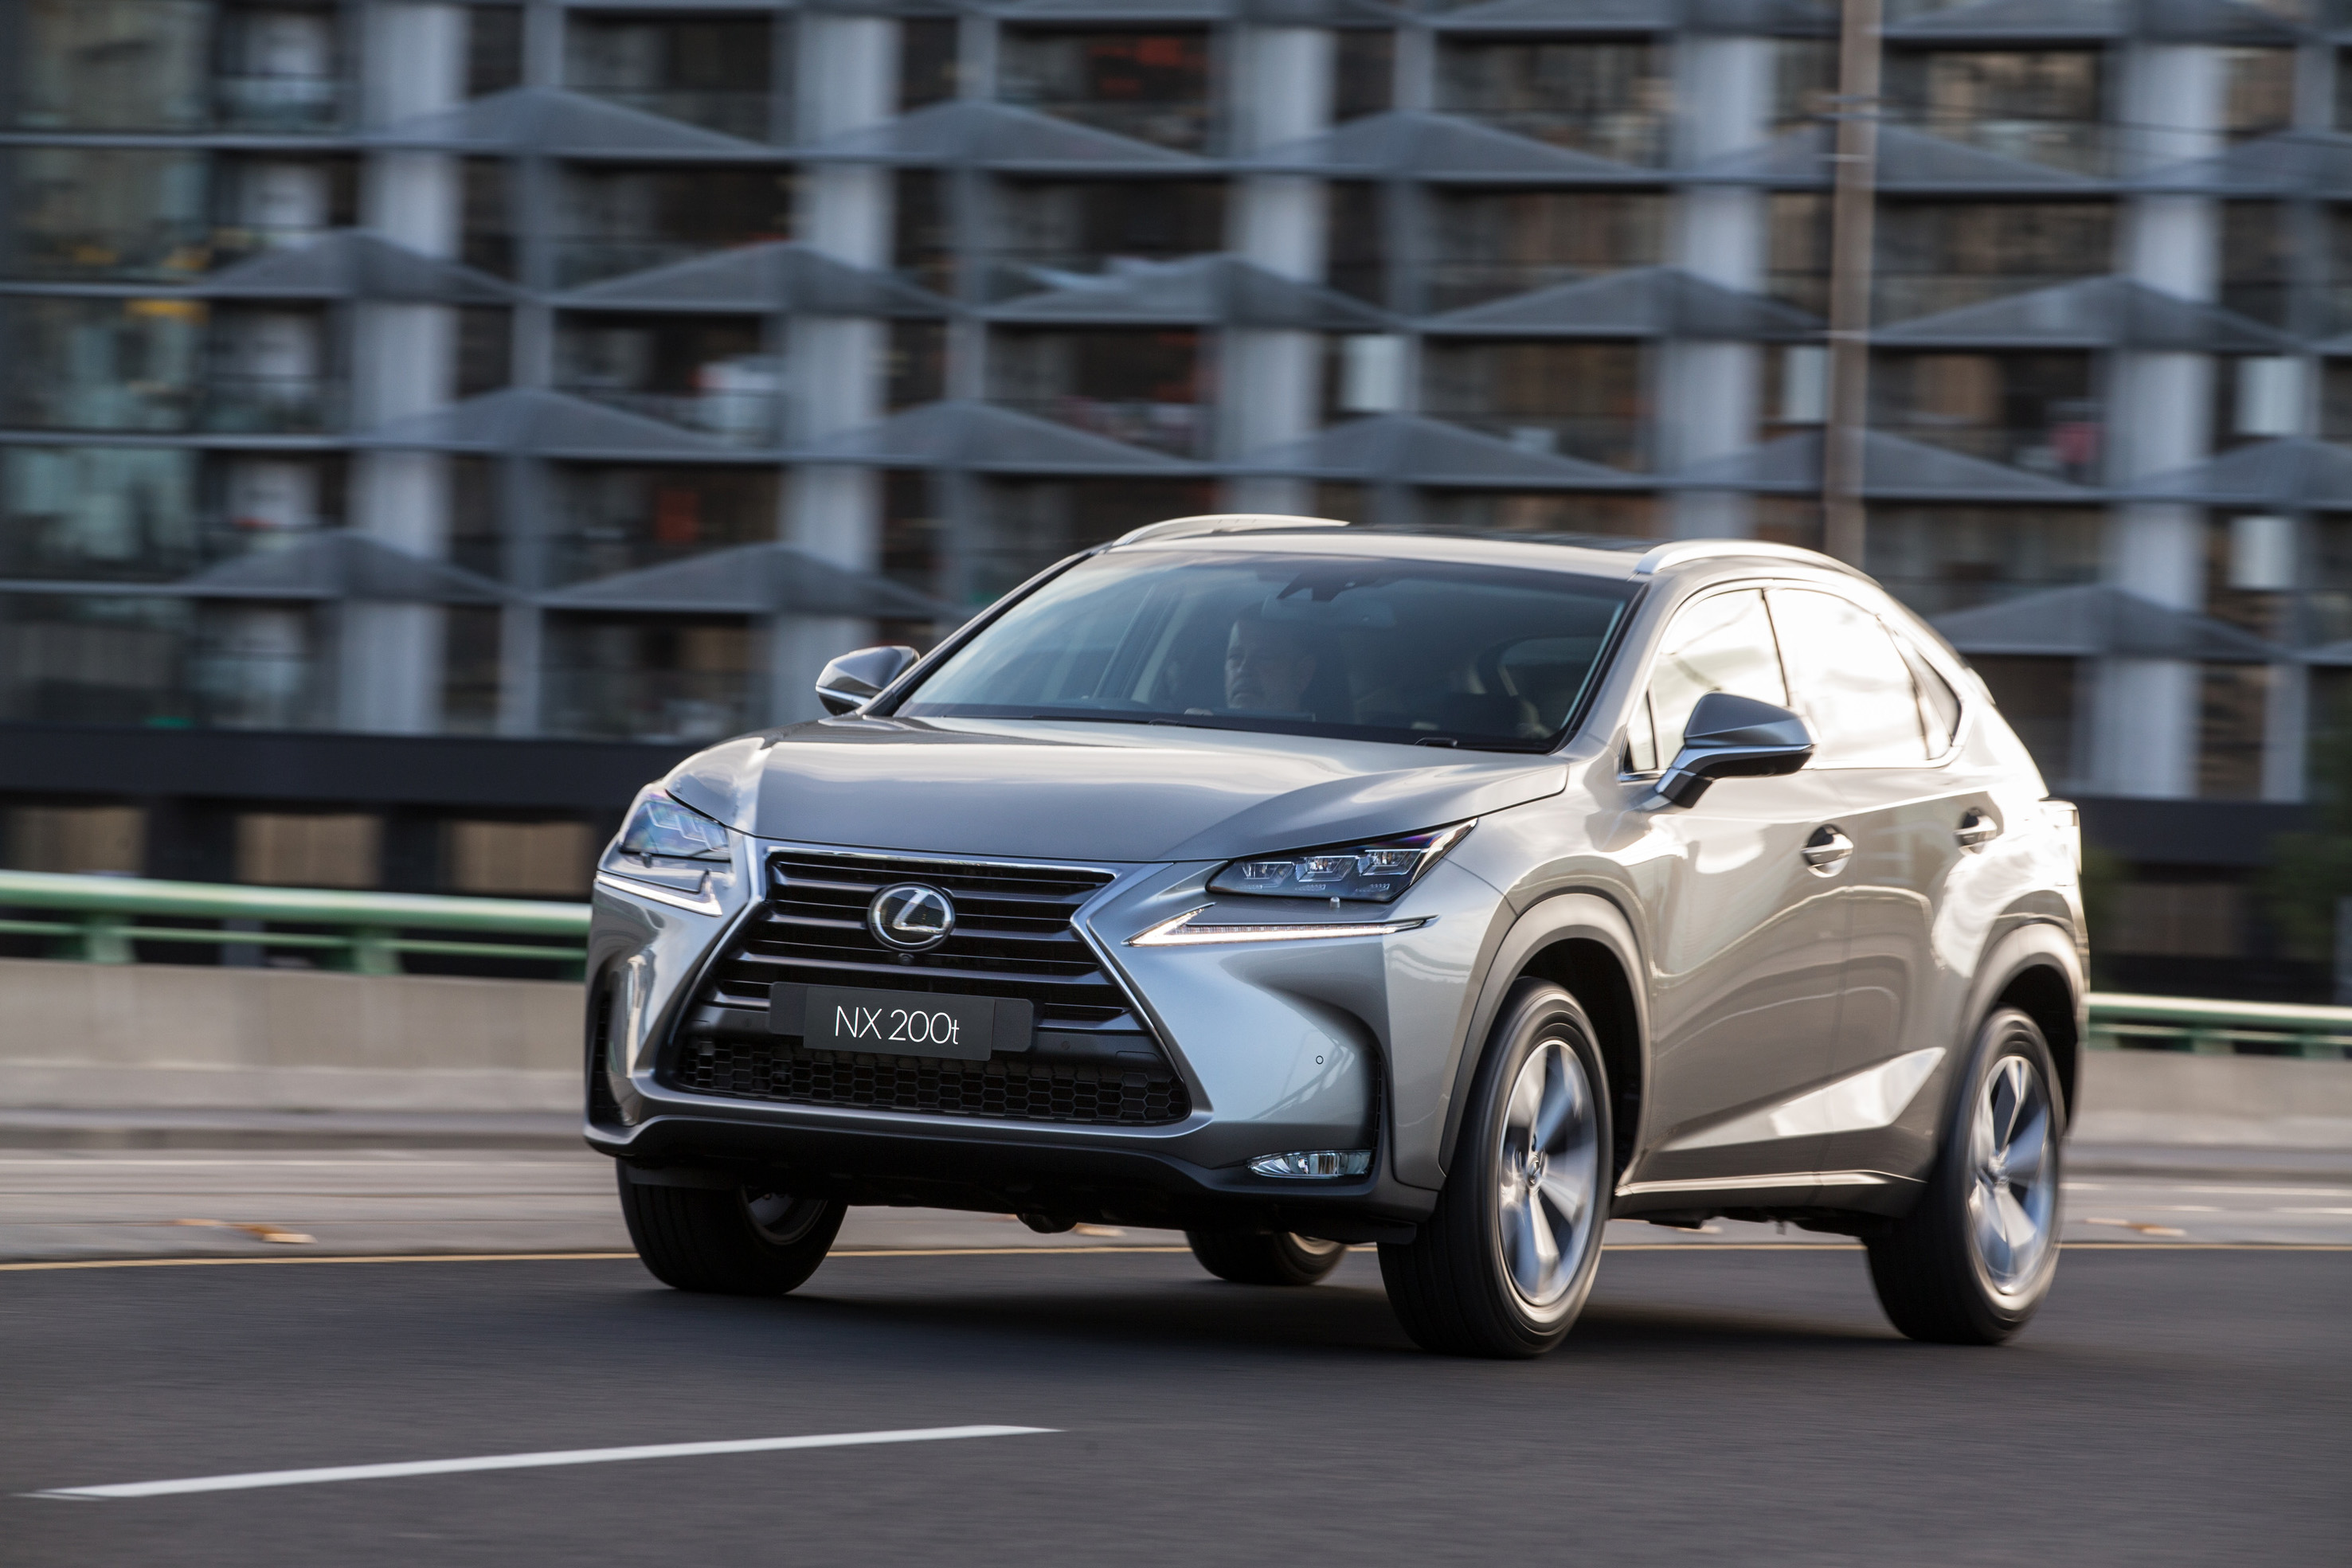 2018 lexus nx200. perfect nx200 with 2018 lexus nx200